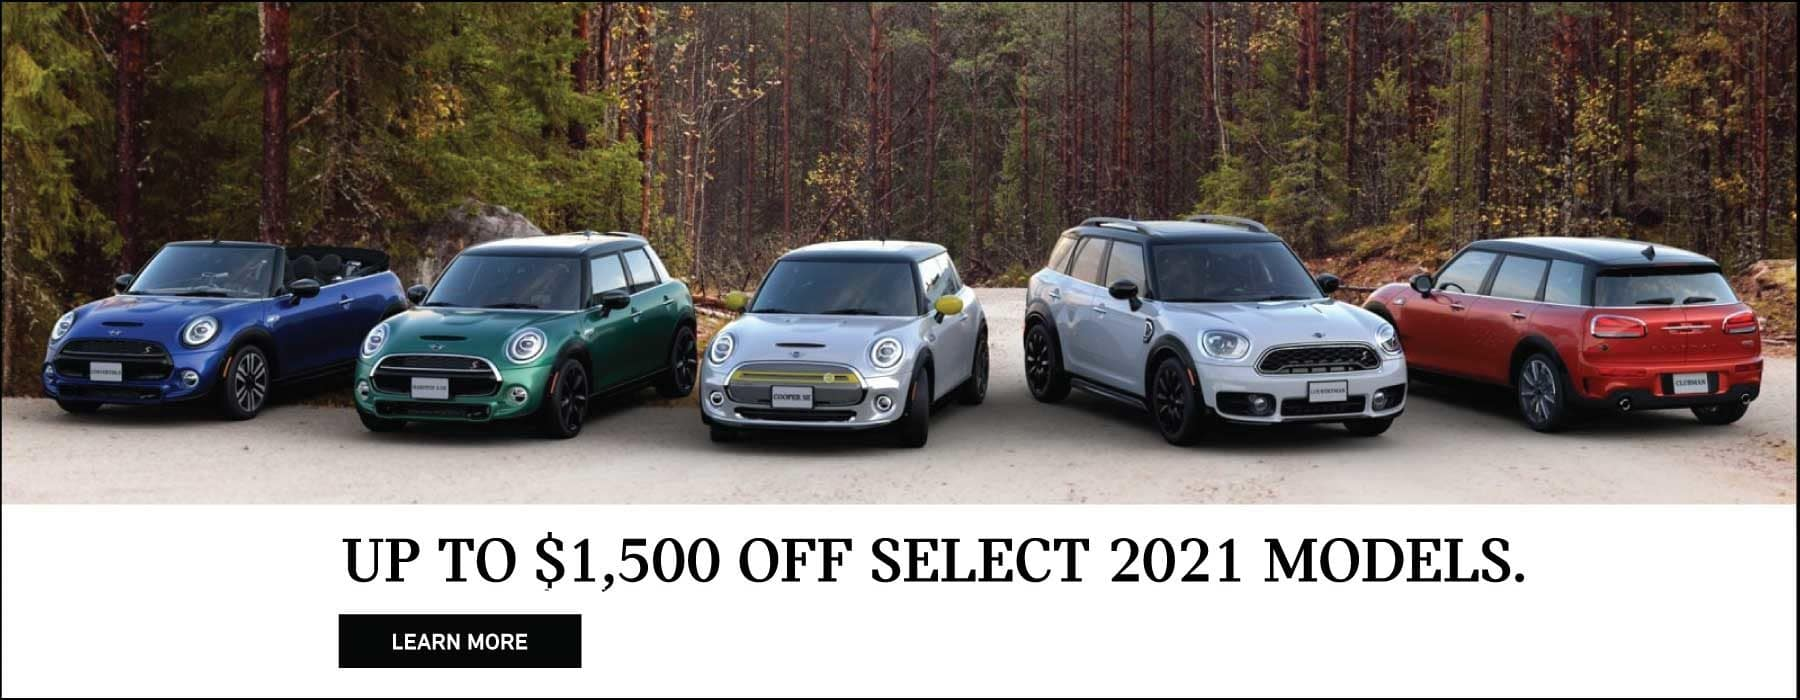 Up to $1,500 off select MINI models.